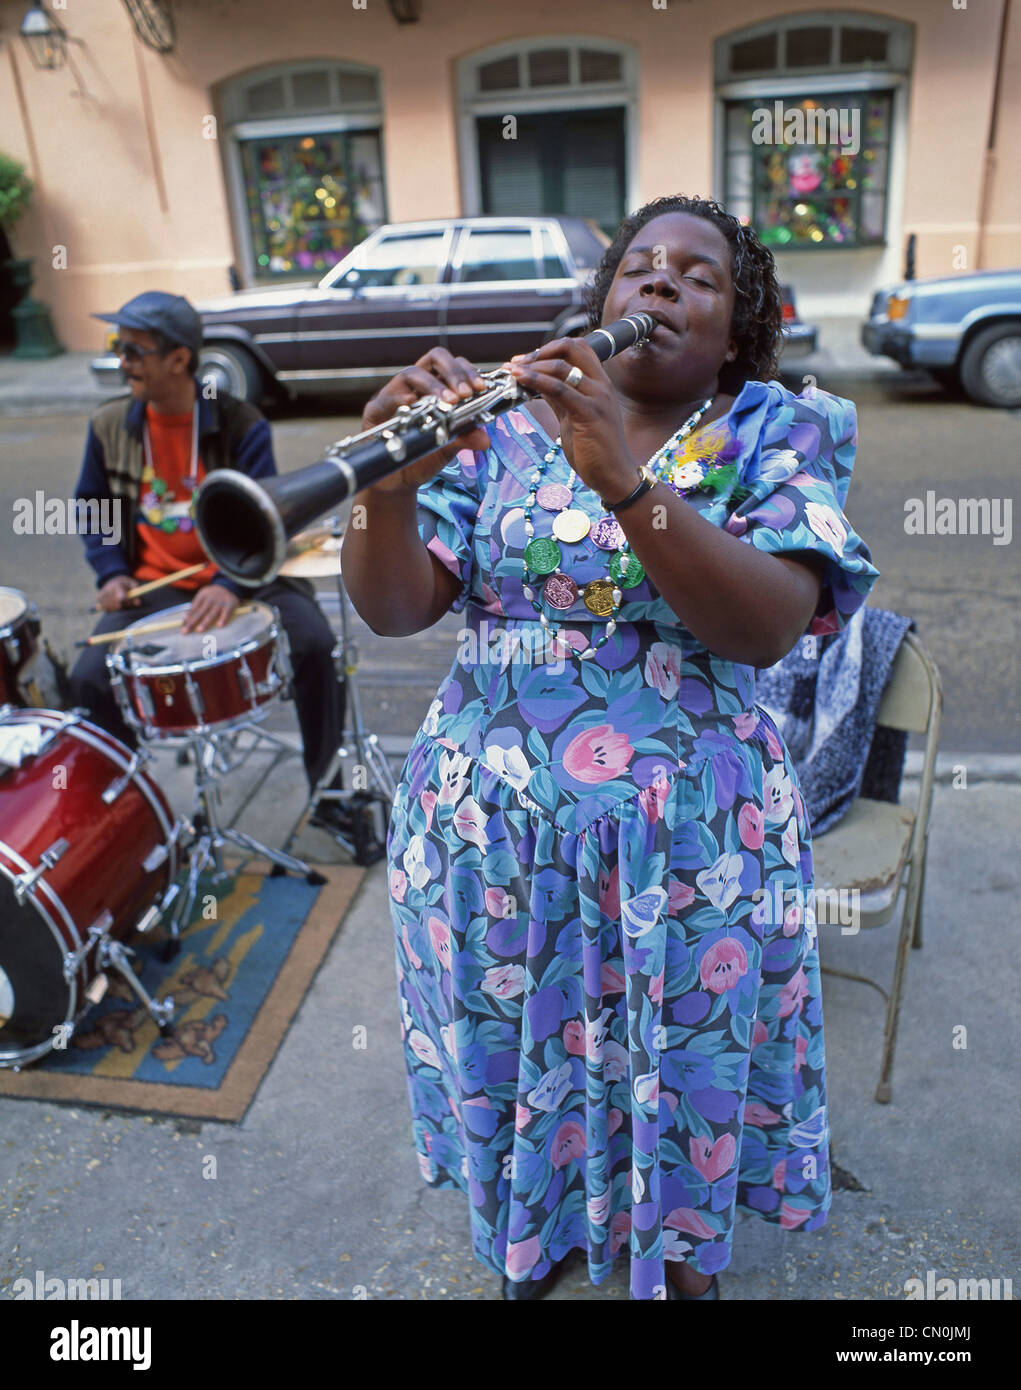 Street jazz musicians, French Quarter, New Orleans, Louisiana, United States of America - Stock Image